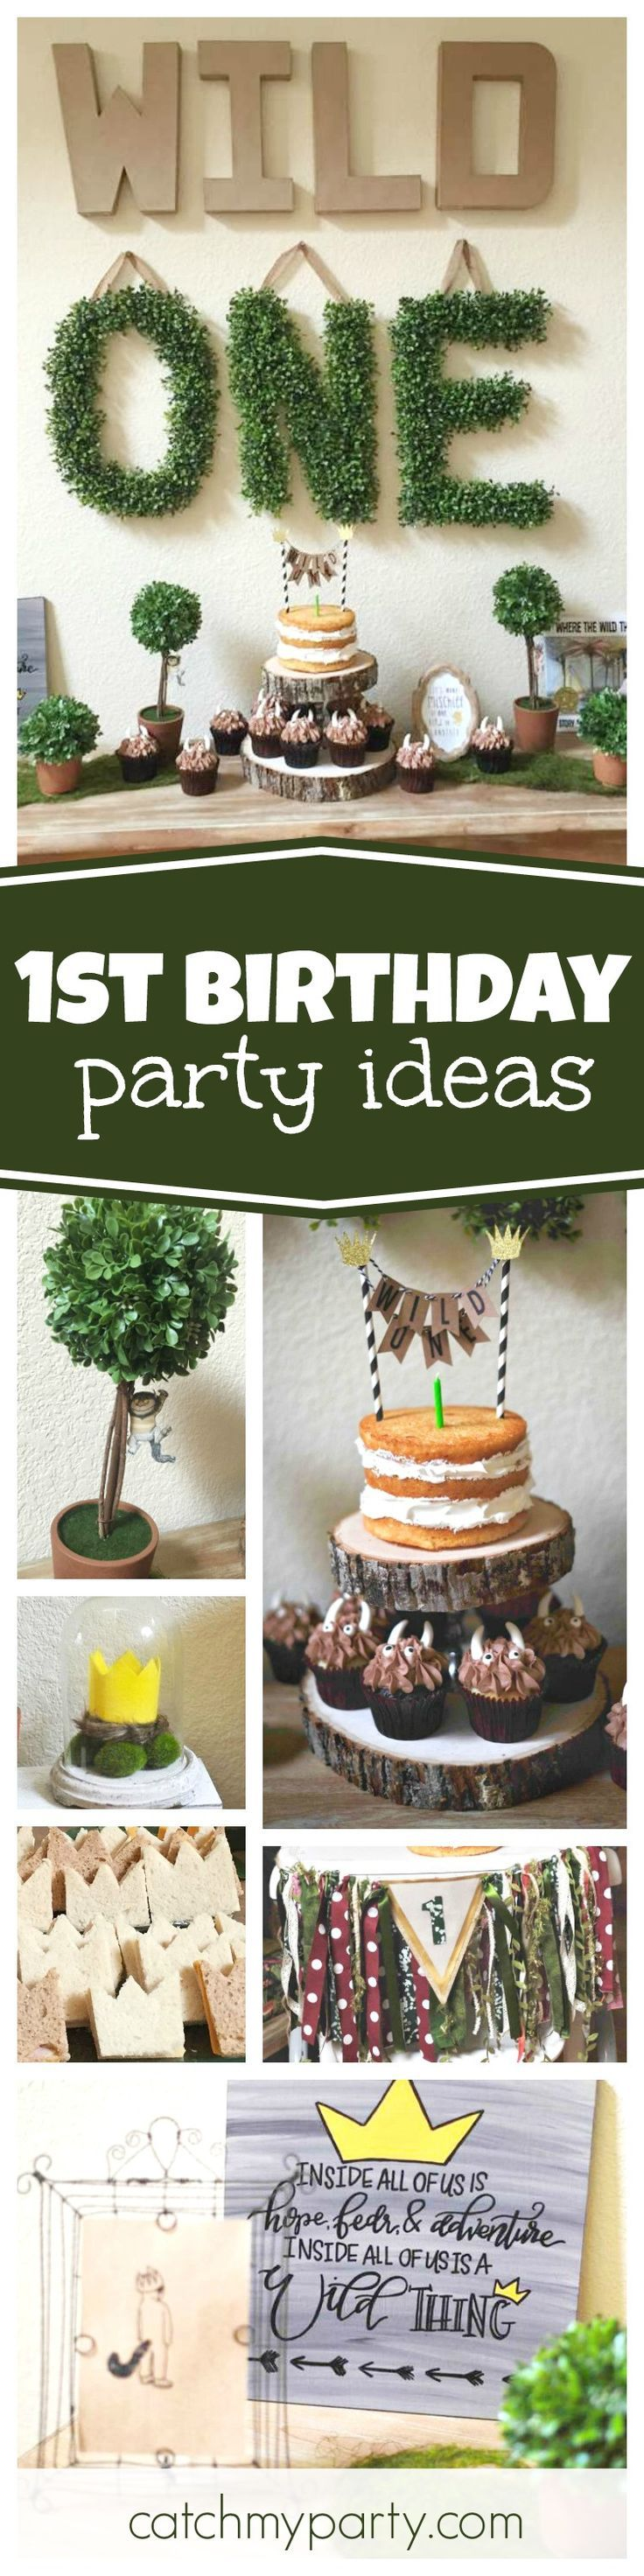 Check out this awesome Wild One birthday party!! The cupcakes are adorable!! See more party ideas and share yours at CatchMyParty.com